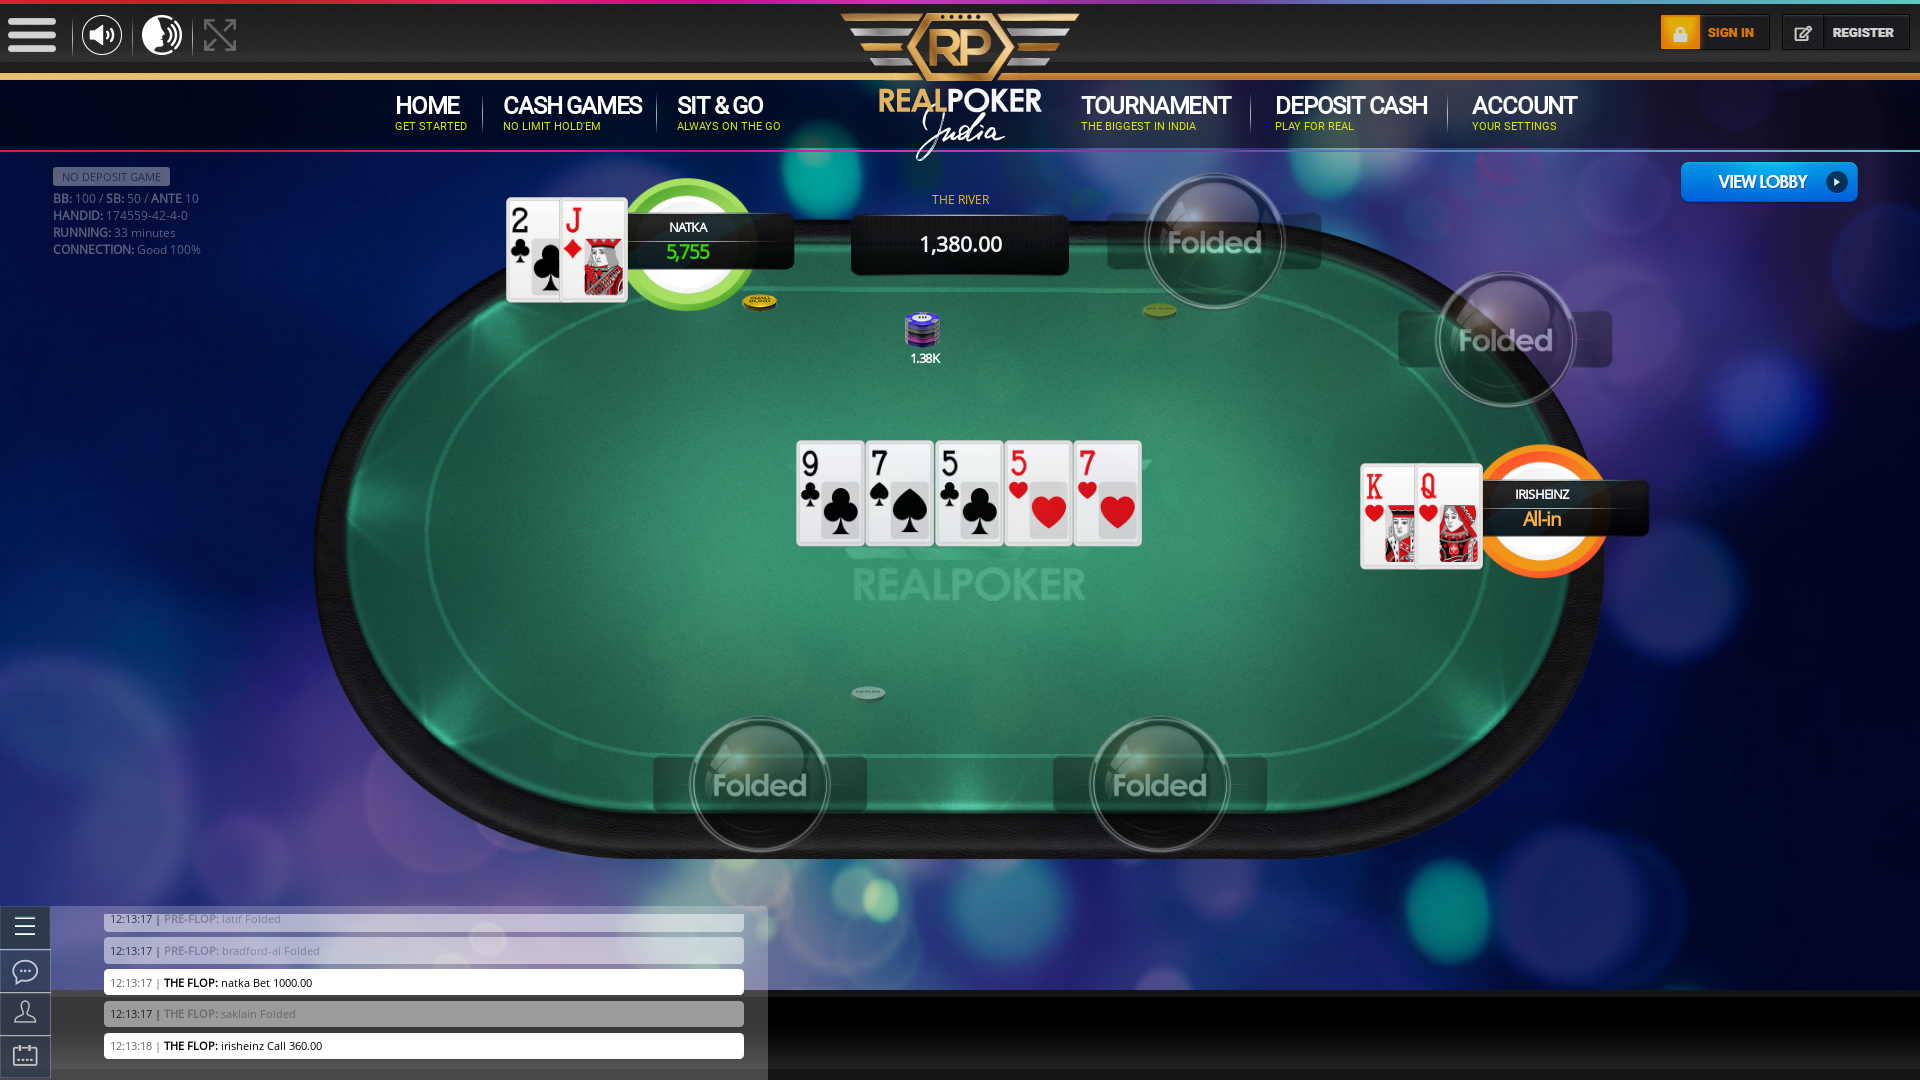 Online poker on a 10 player table in the 33rd minute match up